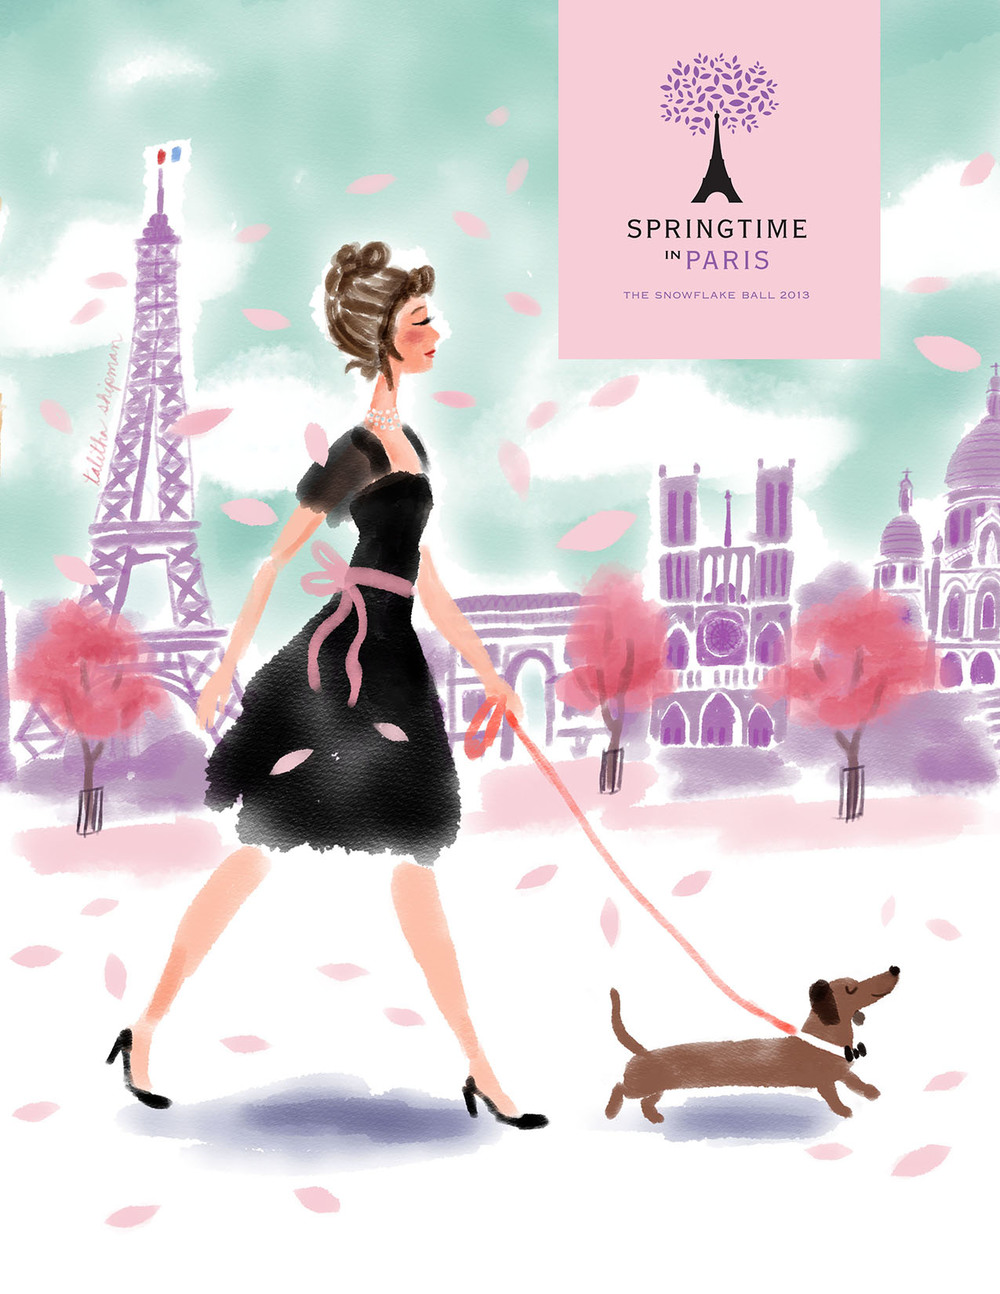 Springtime In Paris Program Cover